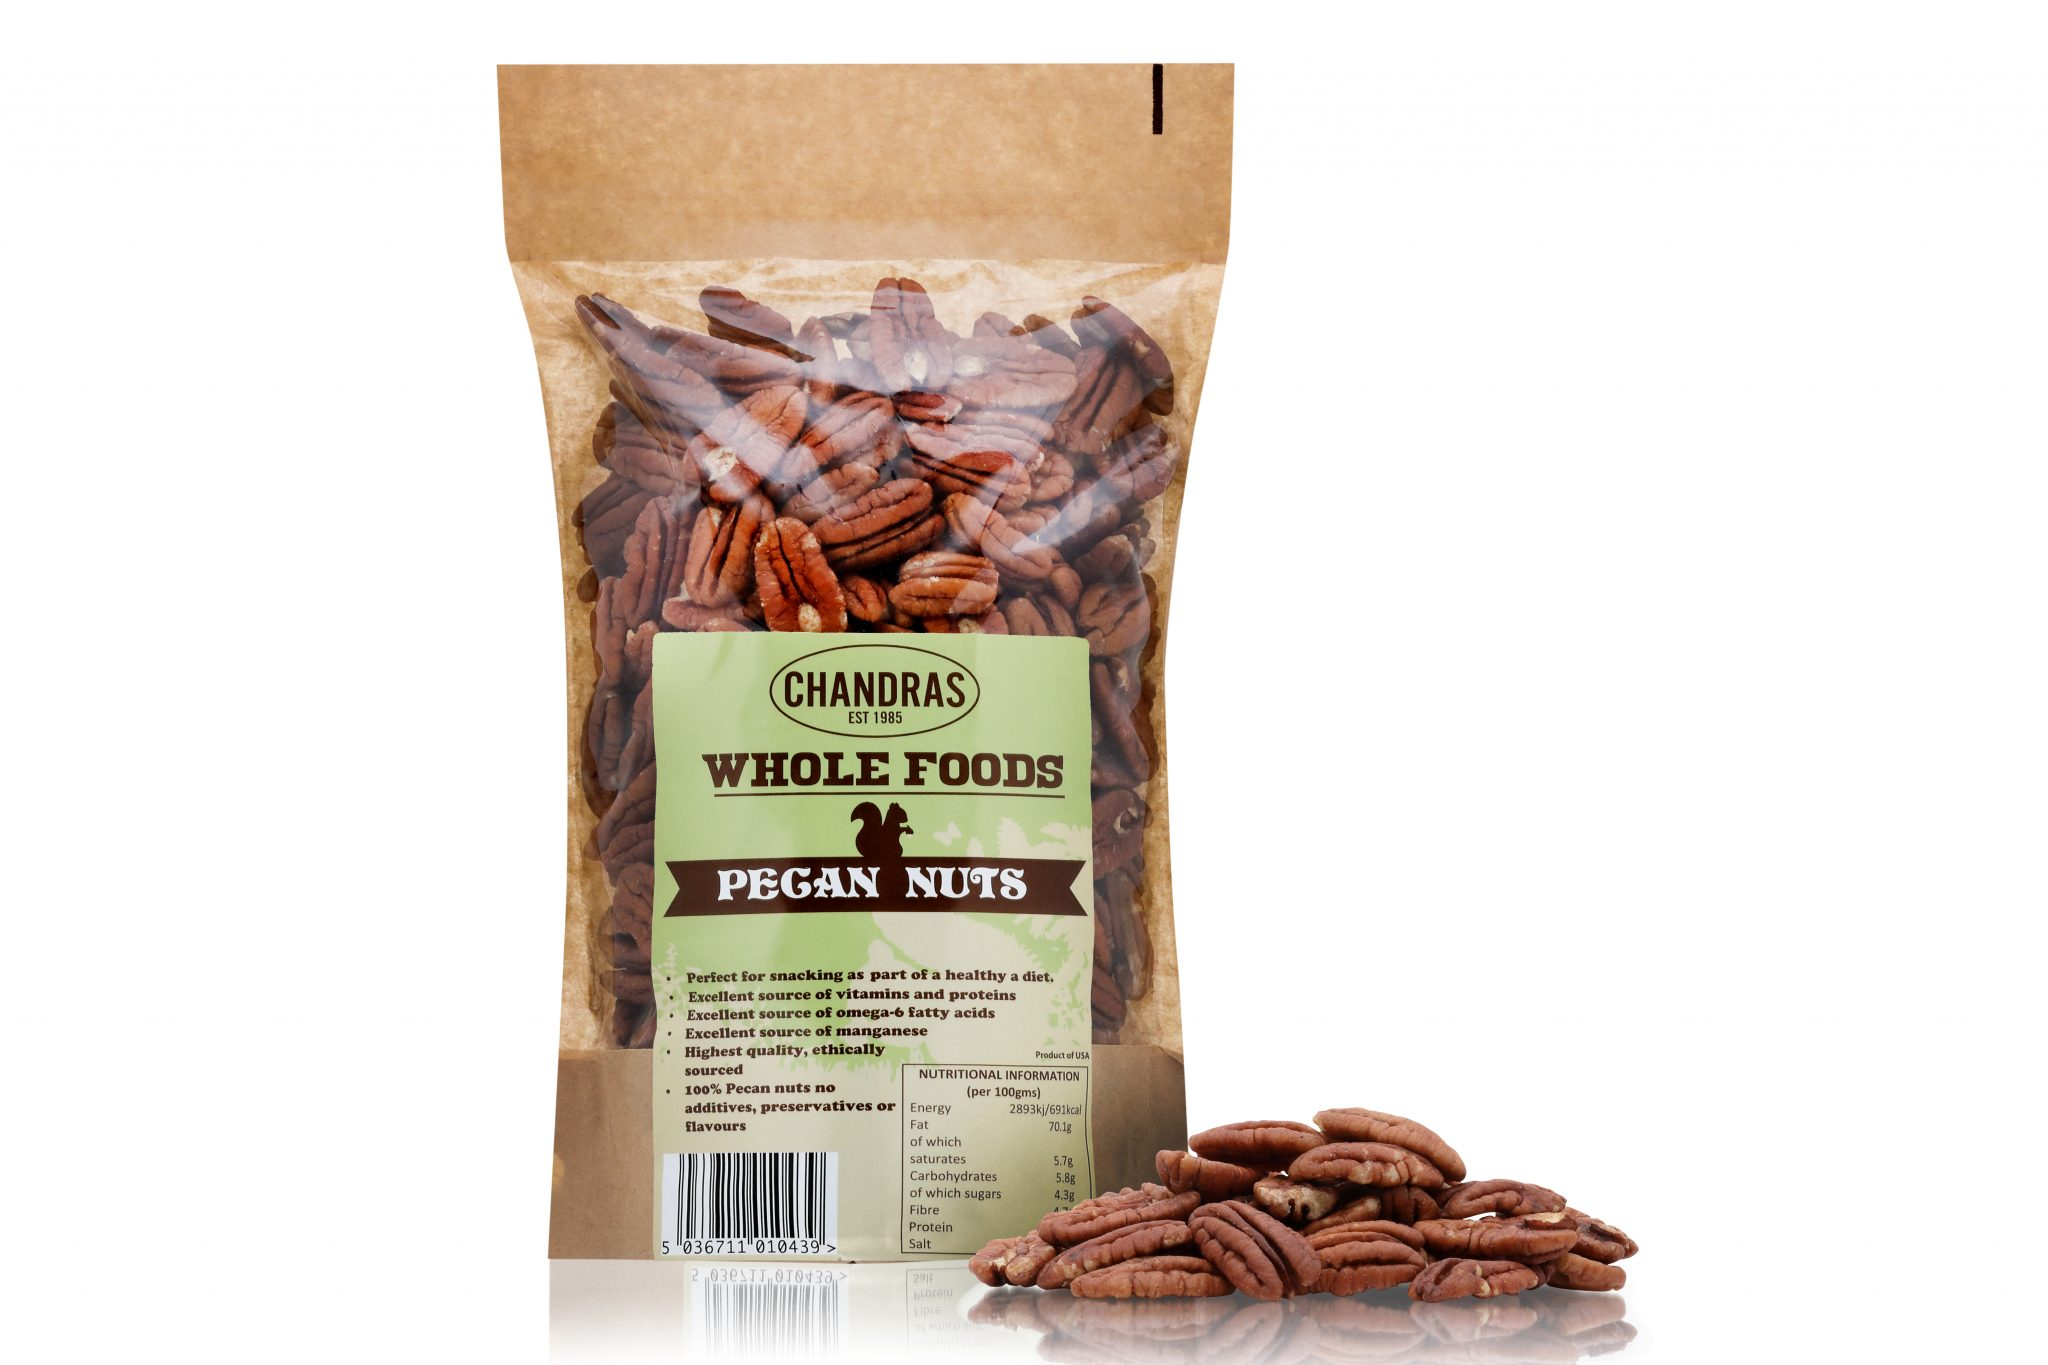 Chandras healthy vegan snack pecan nuts in a packet